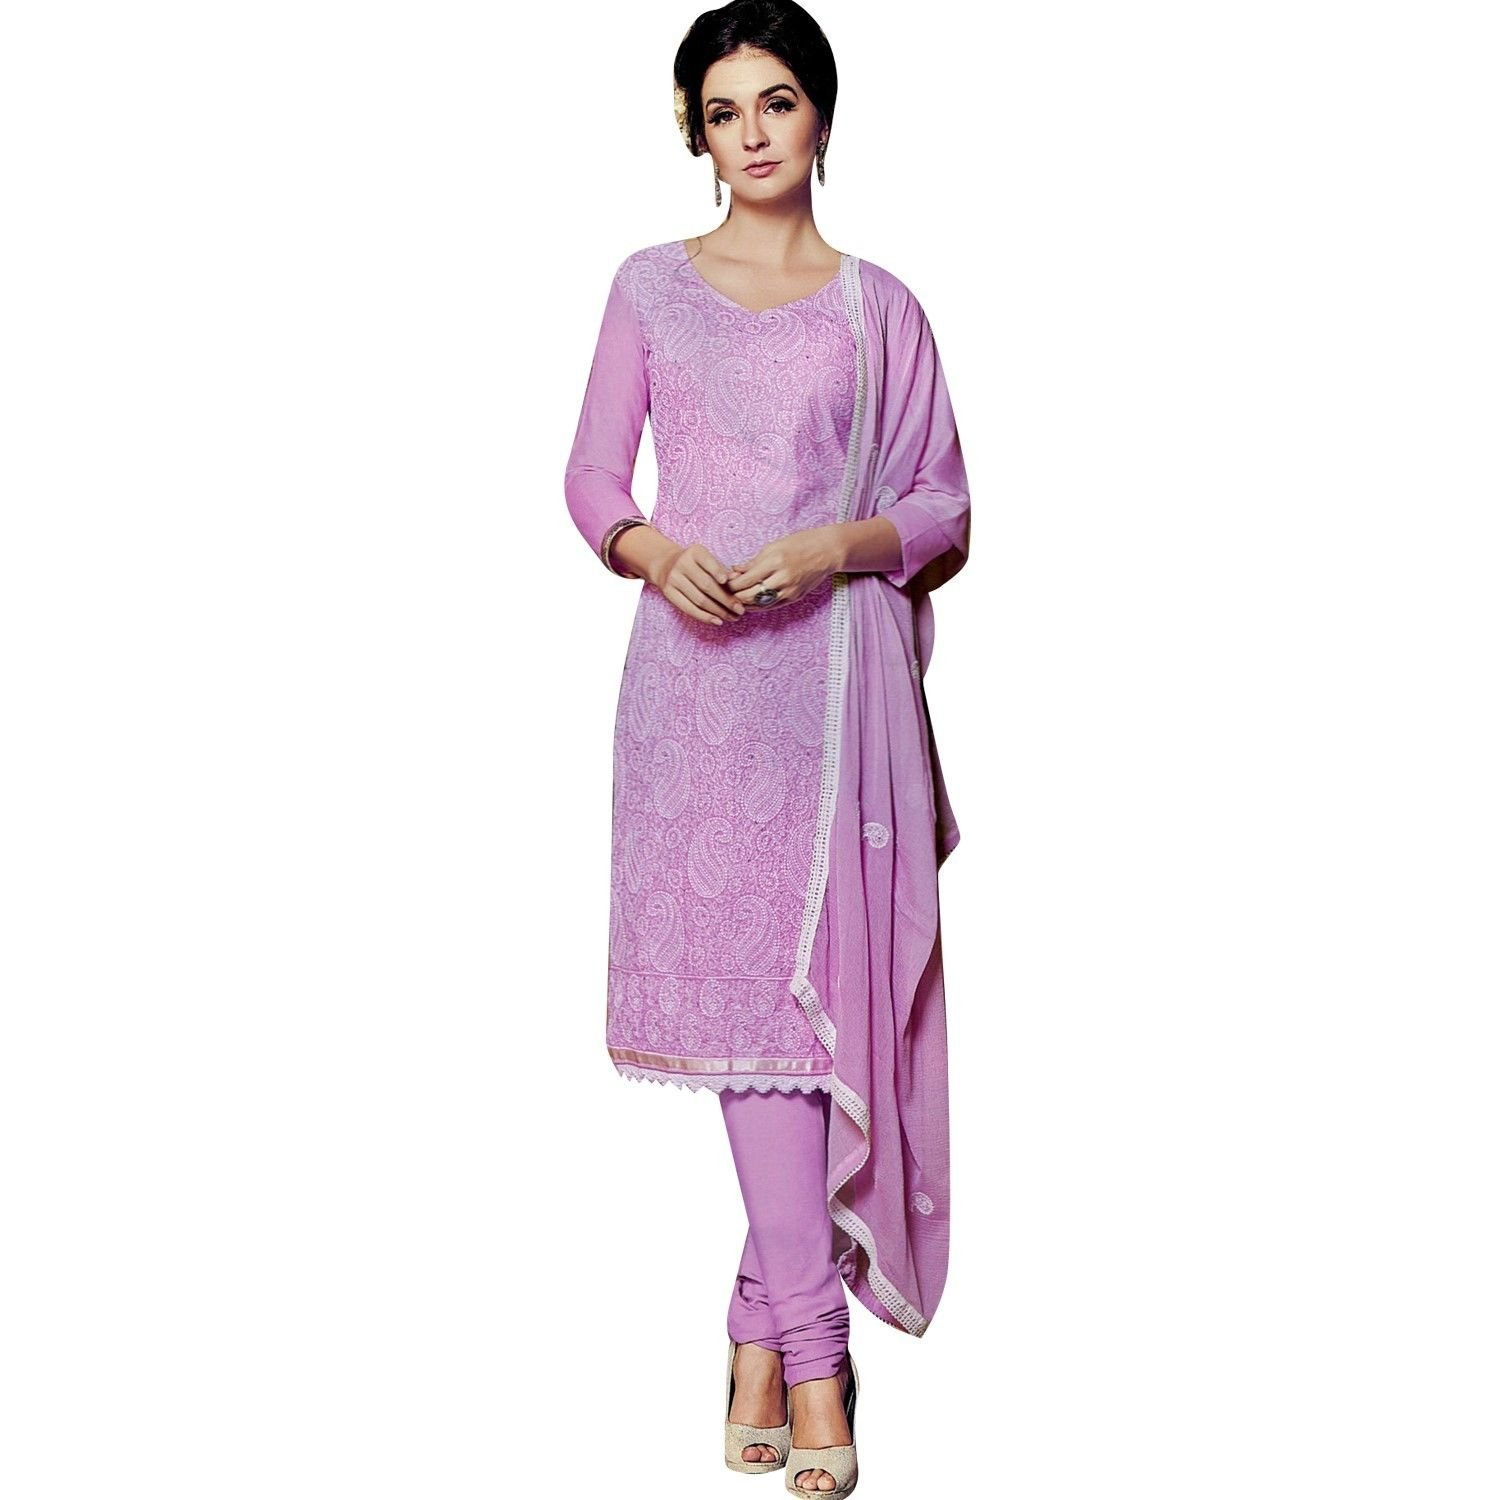 Ladyline Cotton Lakhnavi Embroidery Salwar Kameez Womens Indian Dress Ready to Wear Salwar Suit by Ladyline (Image #1)